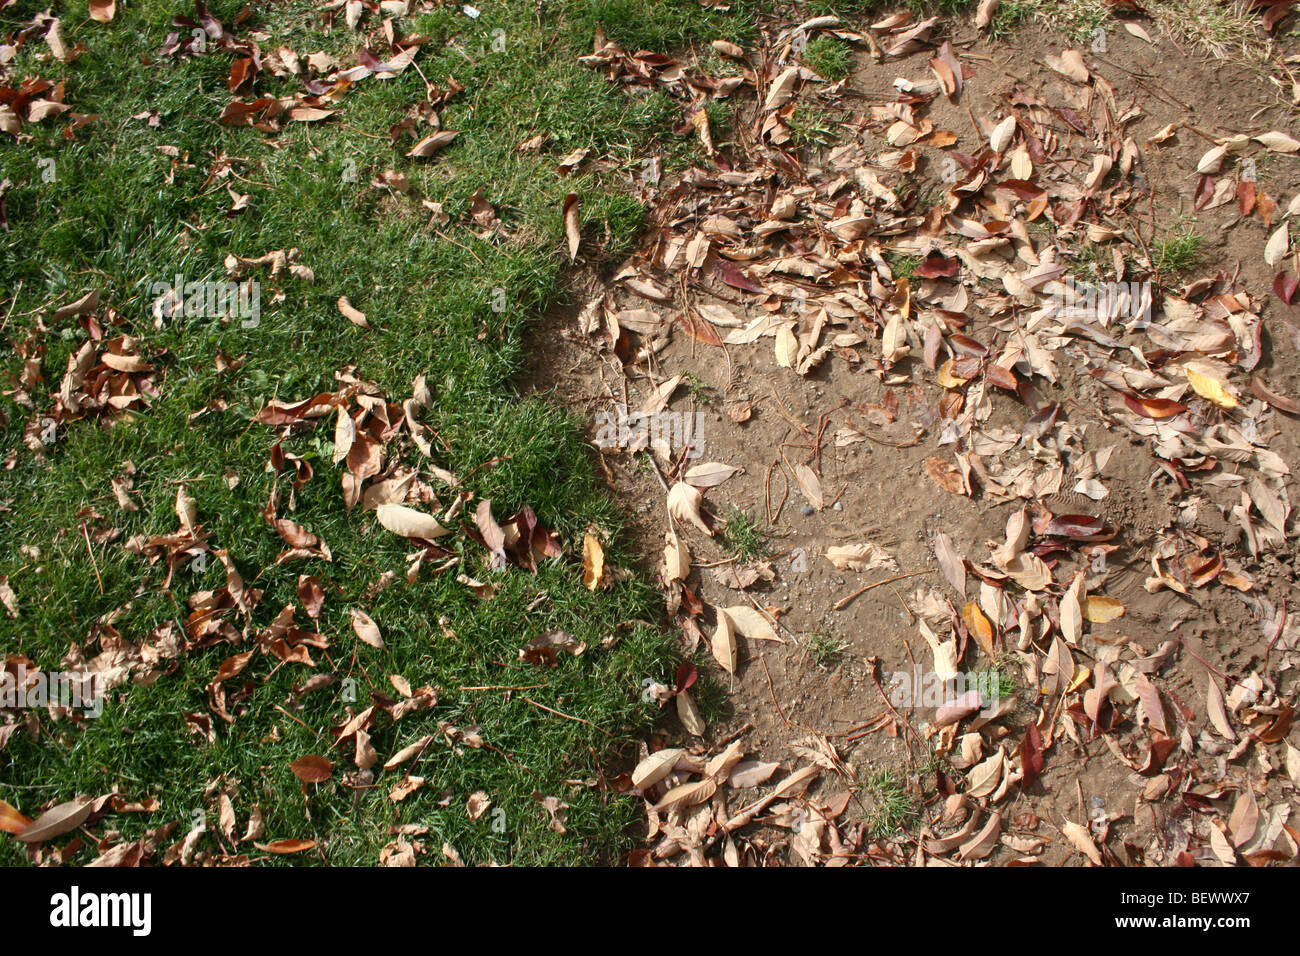 contrast between ground with grass growing, and earth with no grass, brown and green - Stock Image